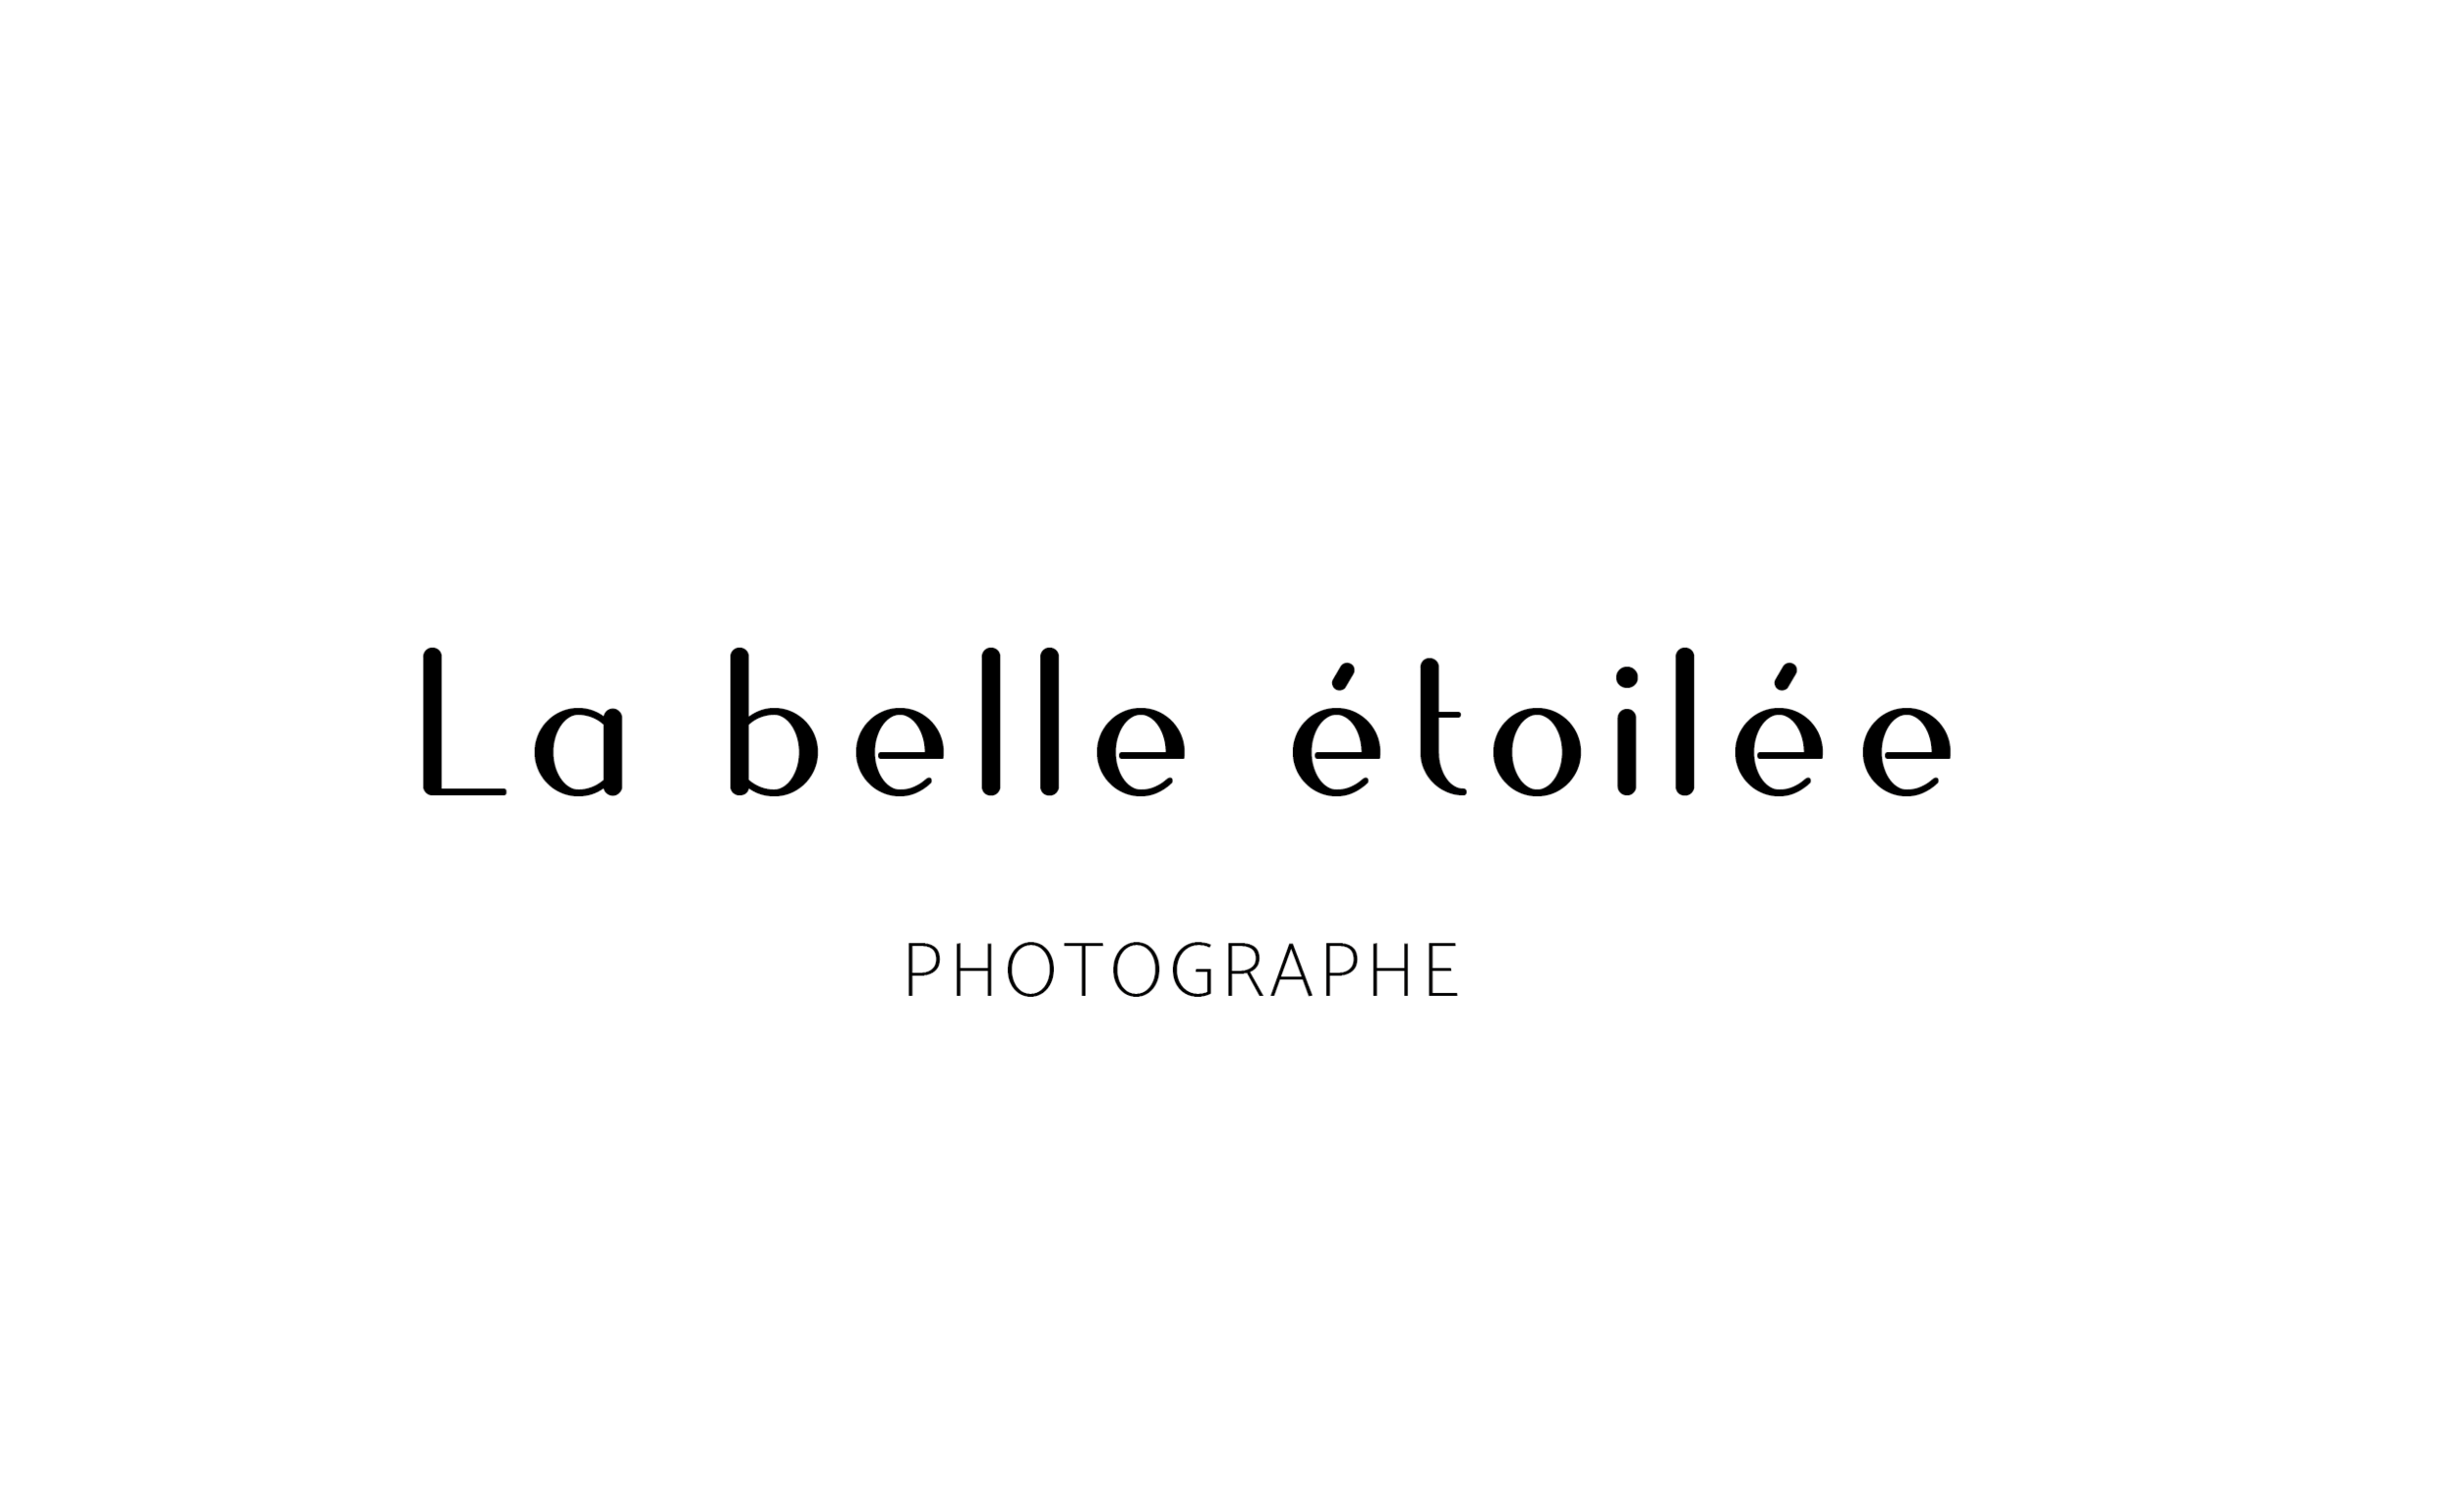 Labelleetoilee_Galerie.victorinepiot.com.png